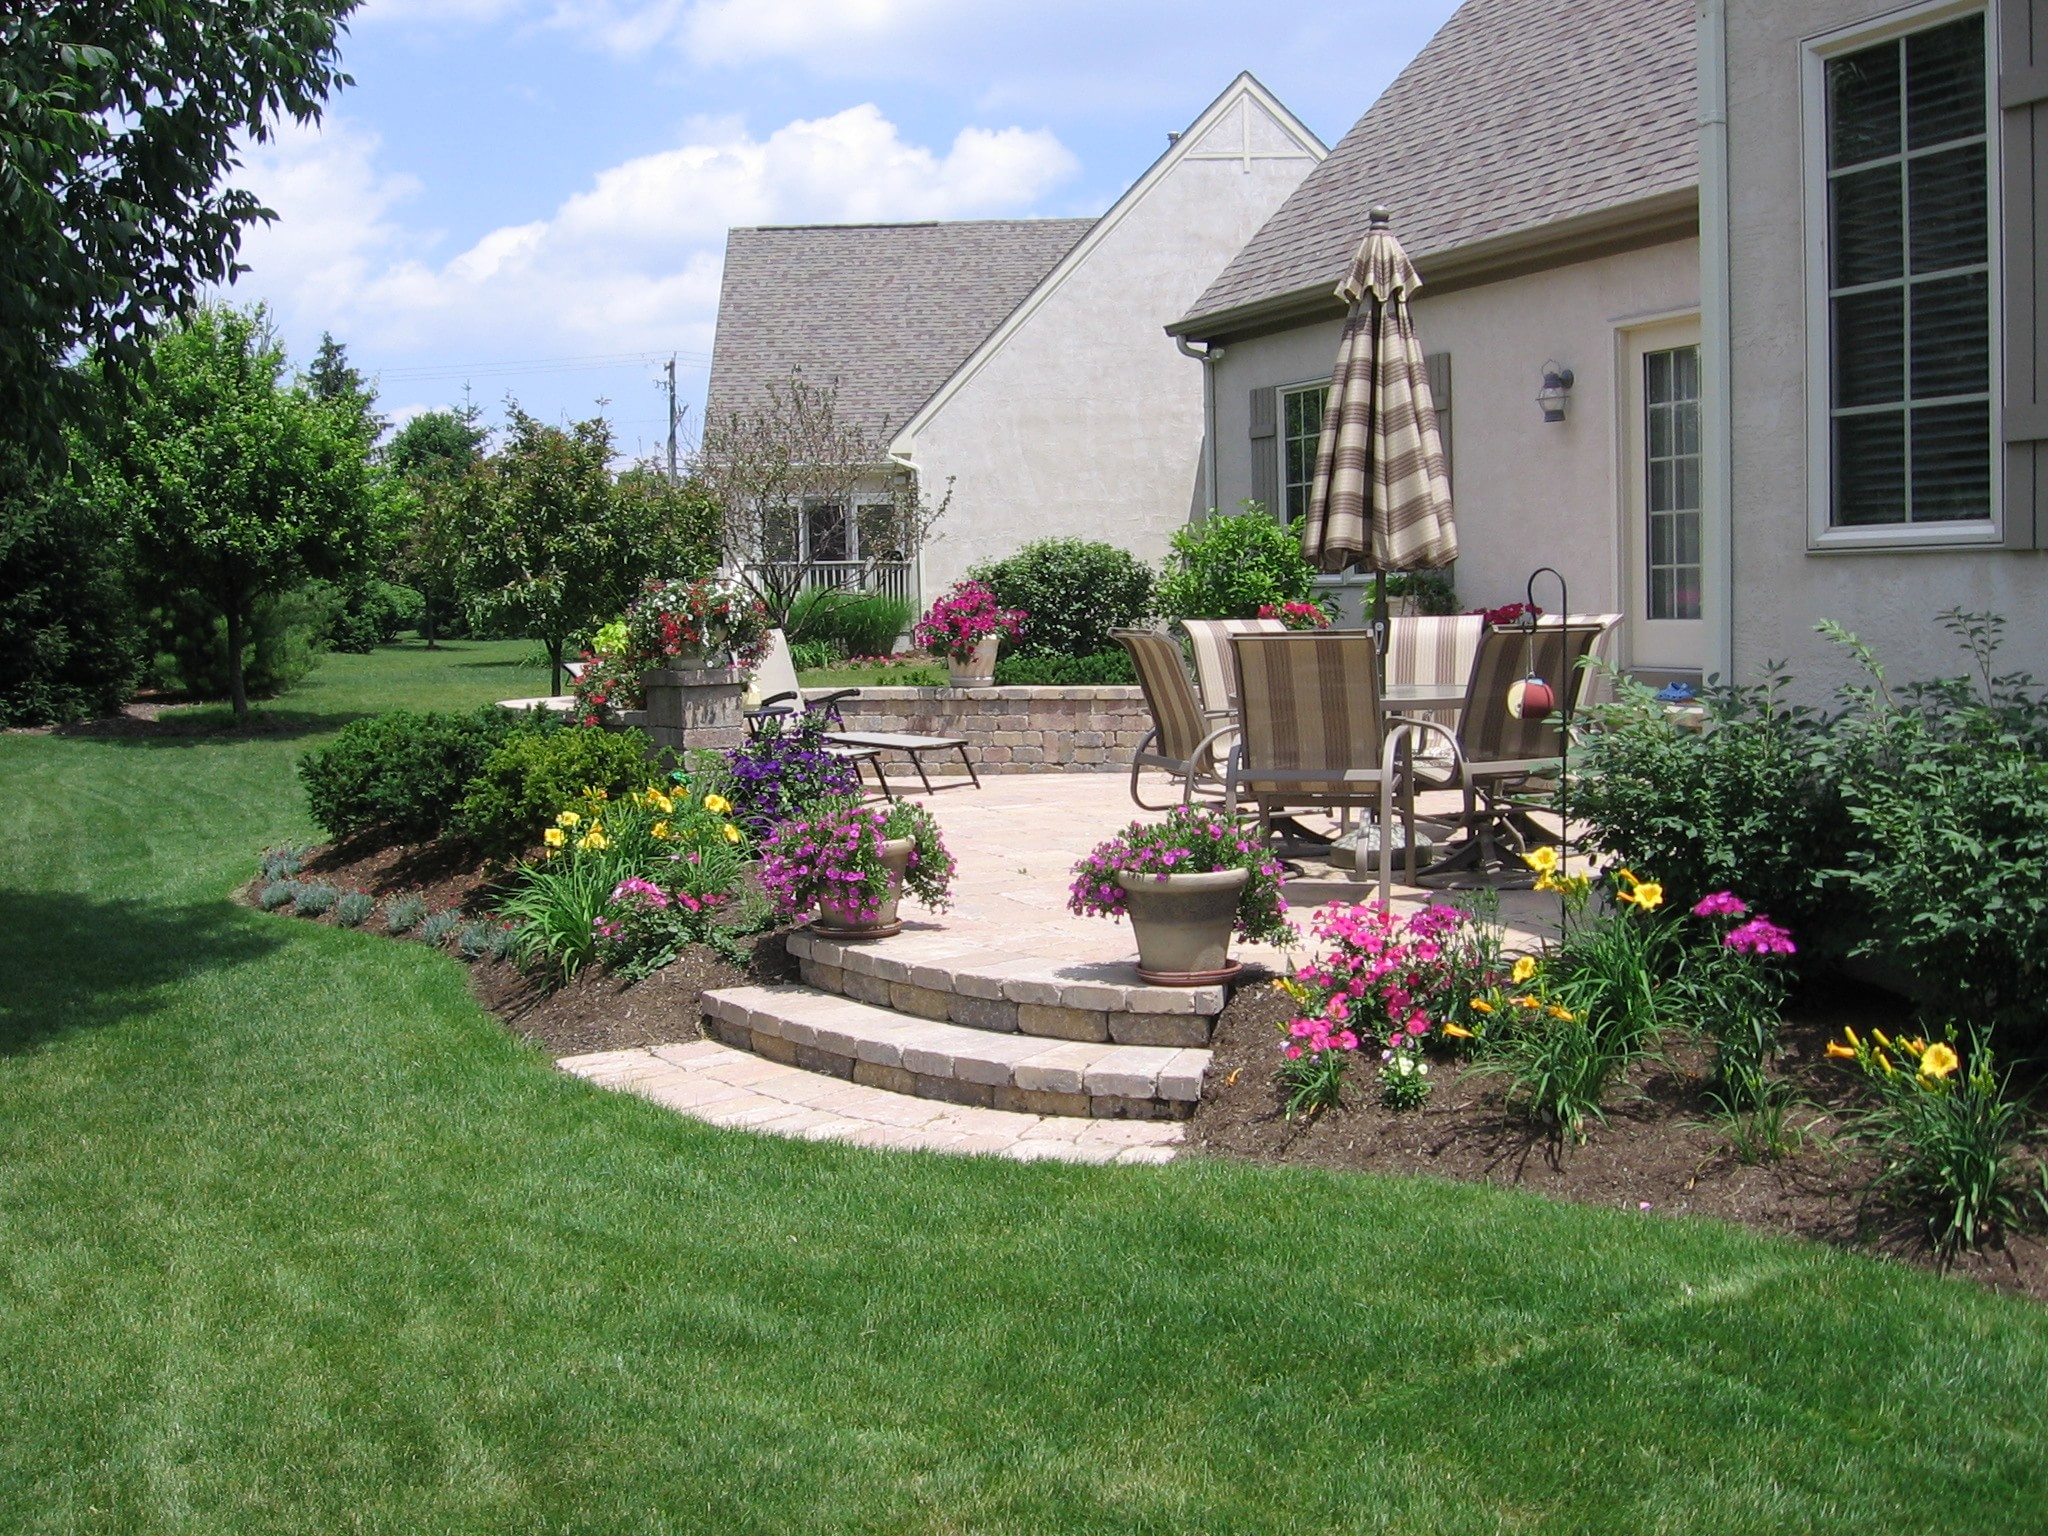 Landscaping Pictures For Decks : Pave your way to better living buck and sons landscape services